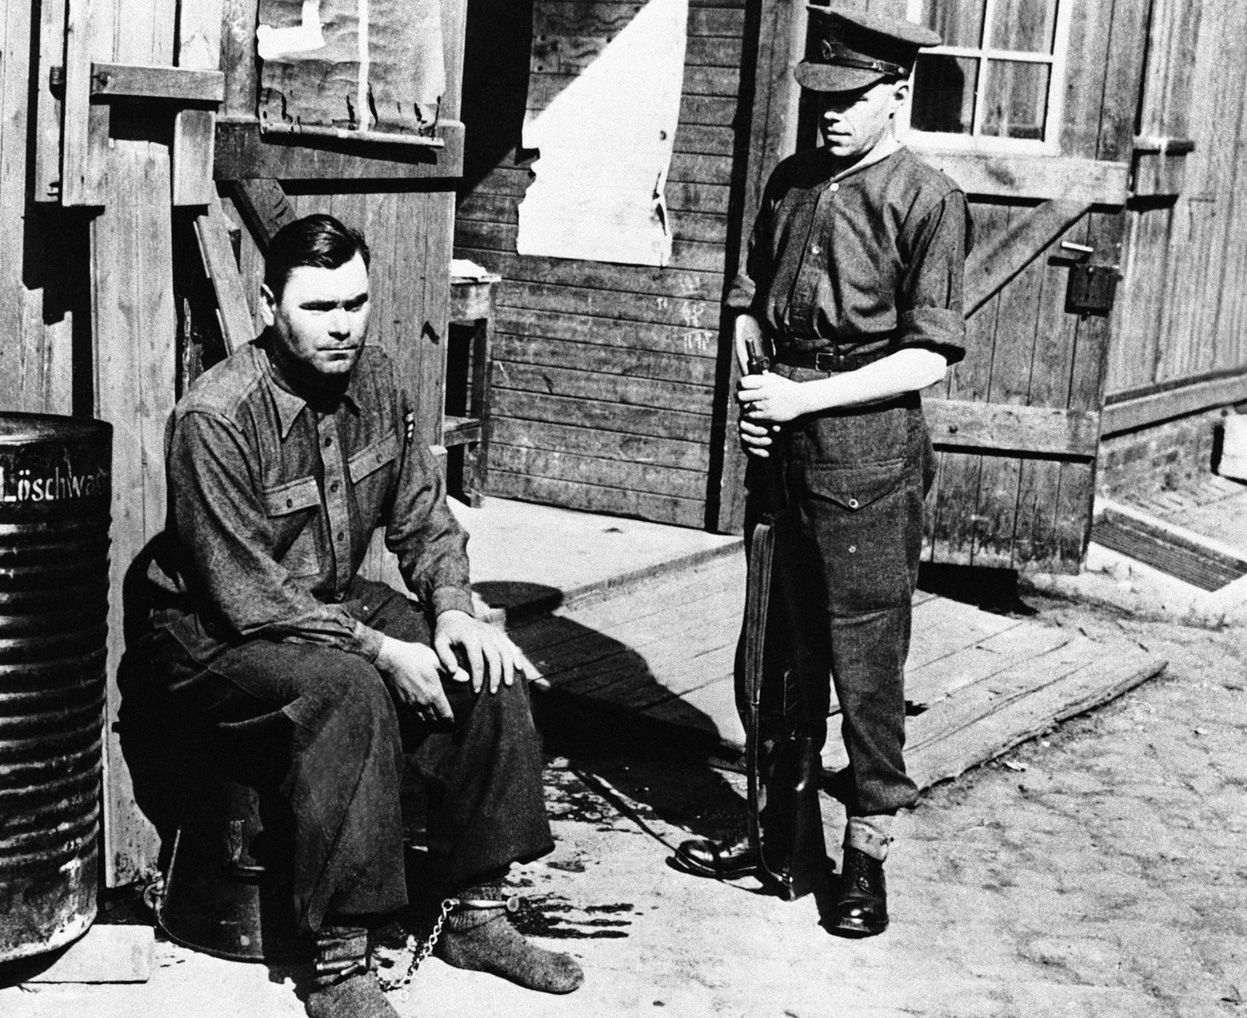 "Joseph Kramer, commandant of the Bergen-Belsen concentration camp in Belsen, photographed on April 28, 1945. After standing trial, Kramer, ""The Beast of Belsen"", was convicted and executed in December of 1945"